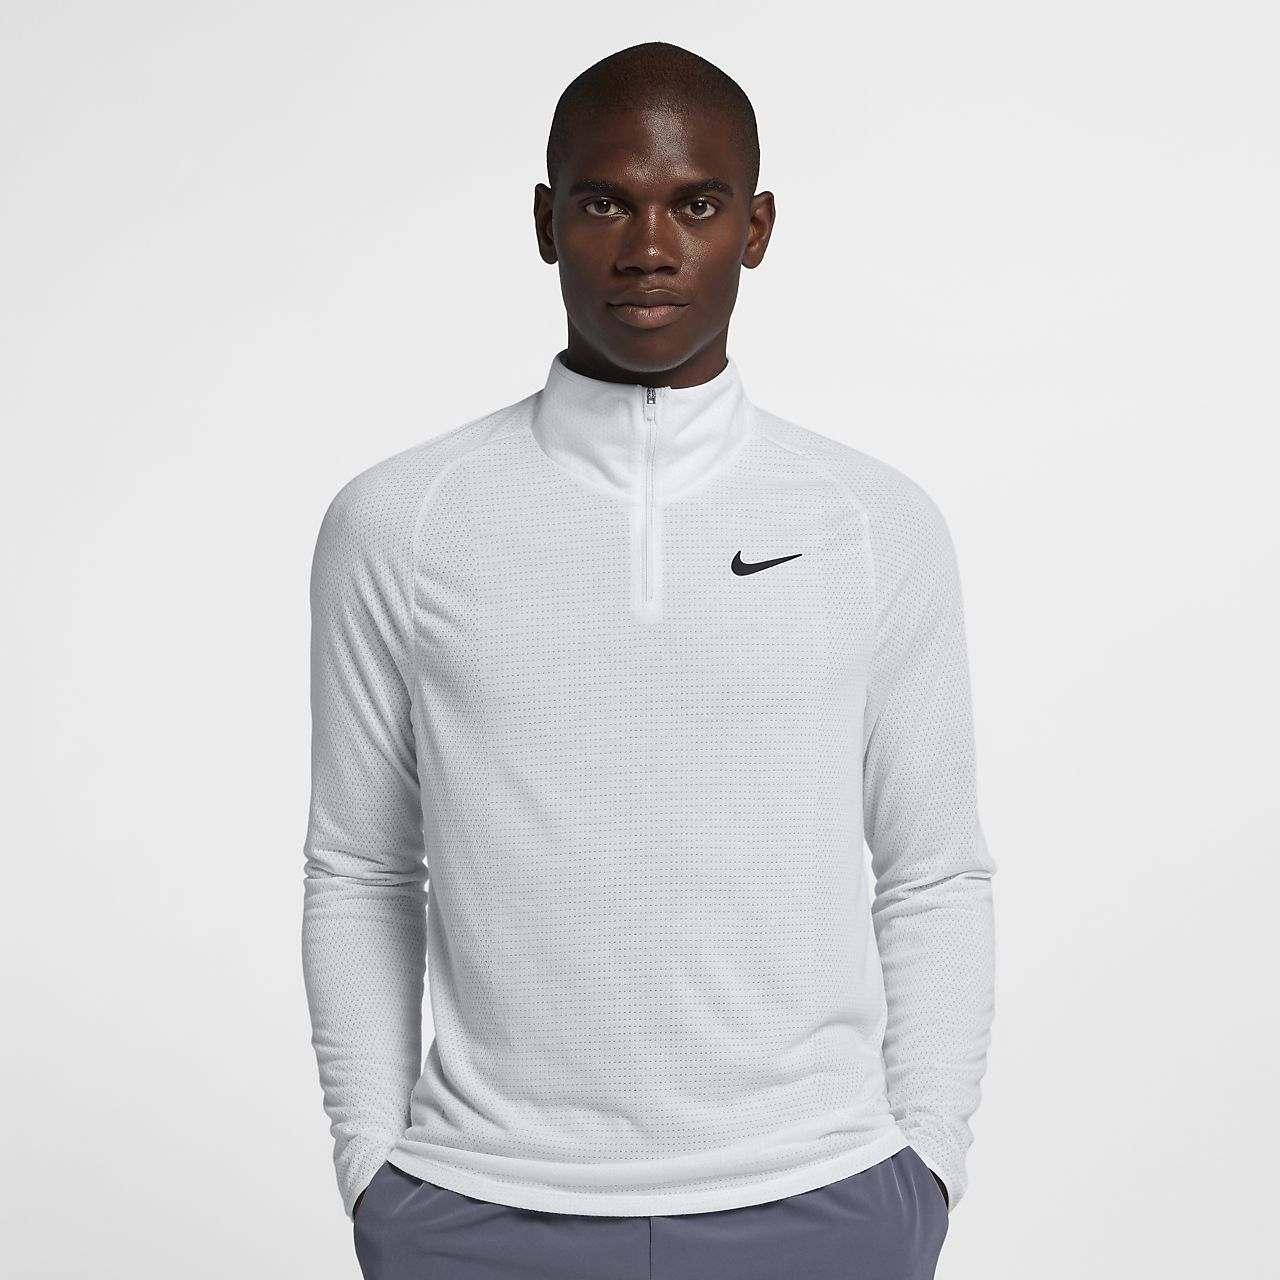 NikeCourt Dri-FIT Challenger Men s 1 2-Zip Tennis Top. Nike.com AE 84d84a05c0f2